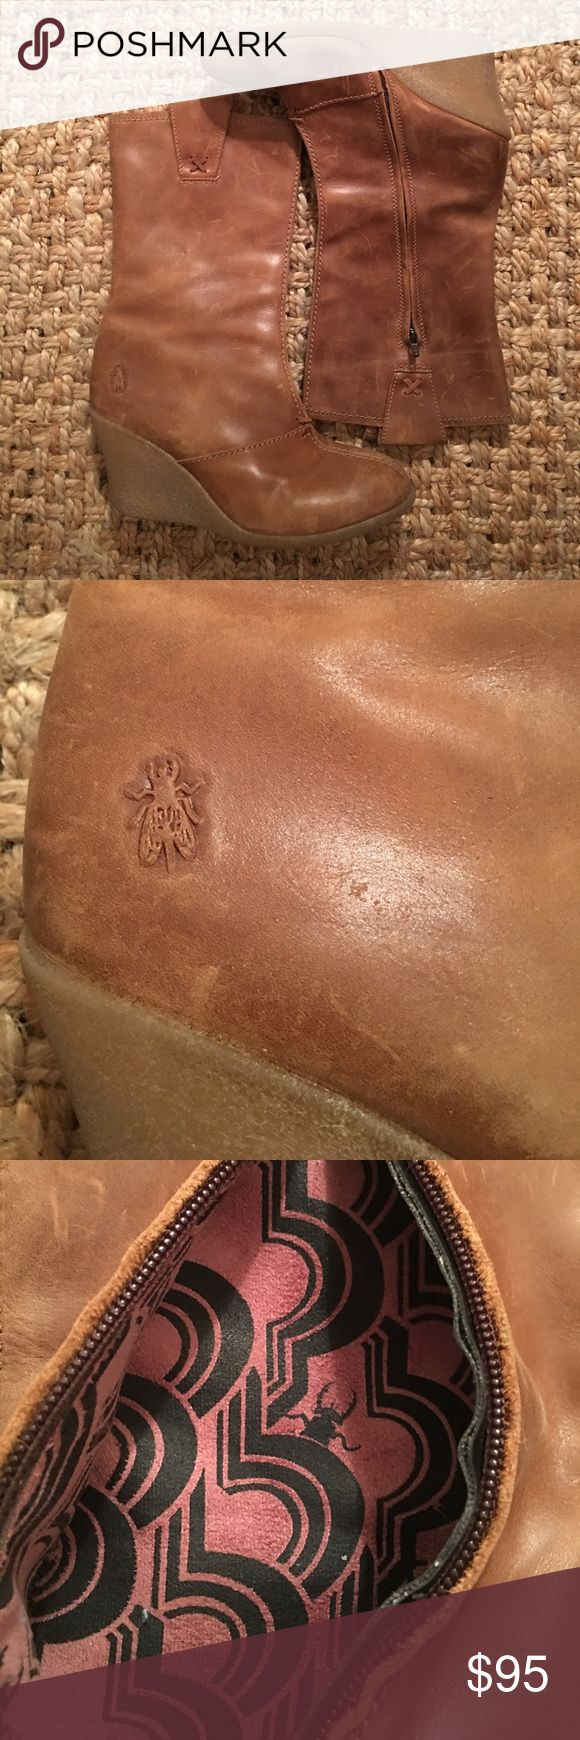 Fly London Tan Wedge Boots Fly London tan zip up wedge boots. gently worn, with lots of life left still in them! Super comfortable! One of my favorite brands! fly london Shoes